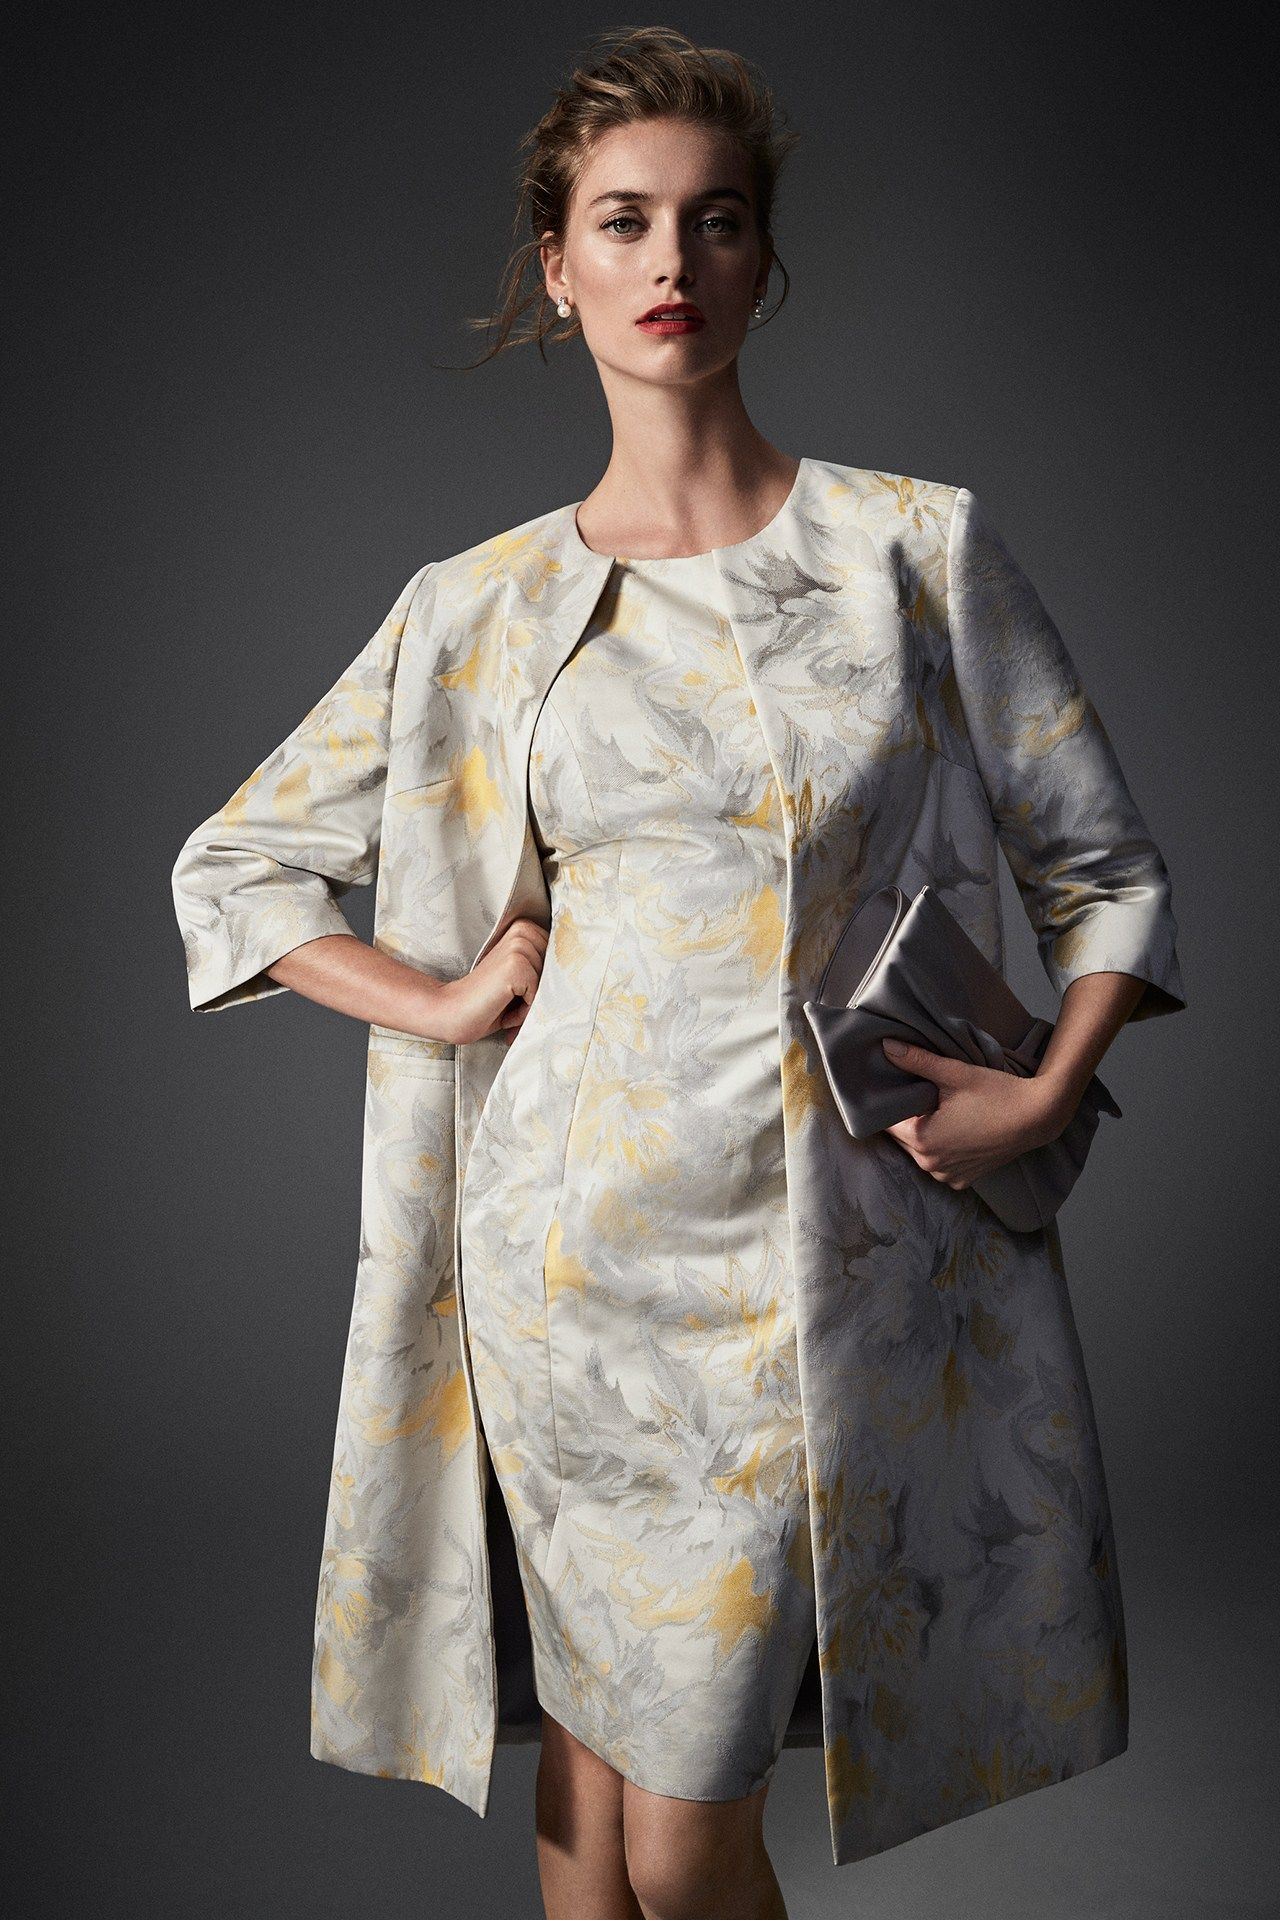 d75e95c9914 Grey and yellow printed mother of the bride dress and dress coat by Bruce  Oldfield at John Lewis